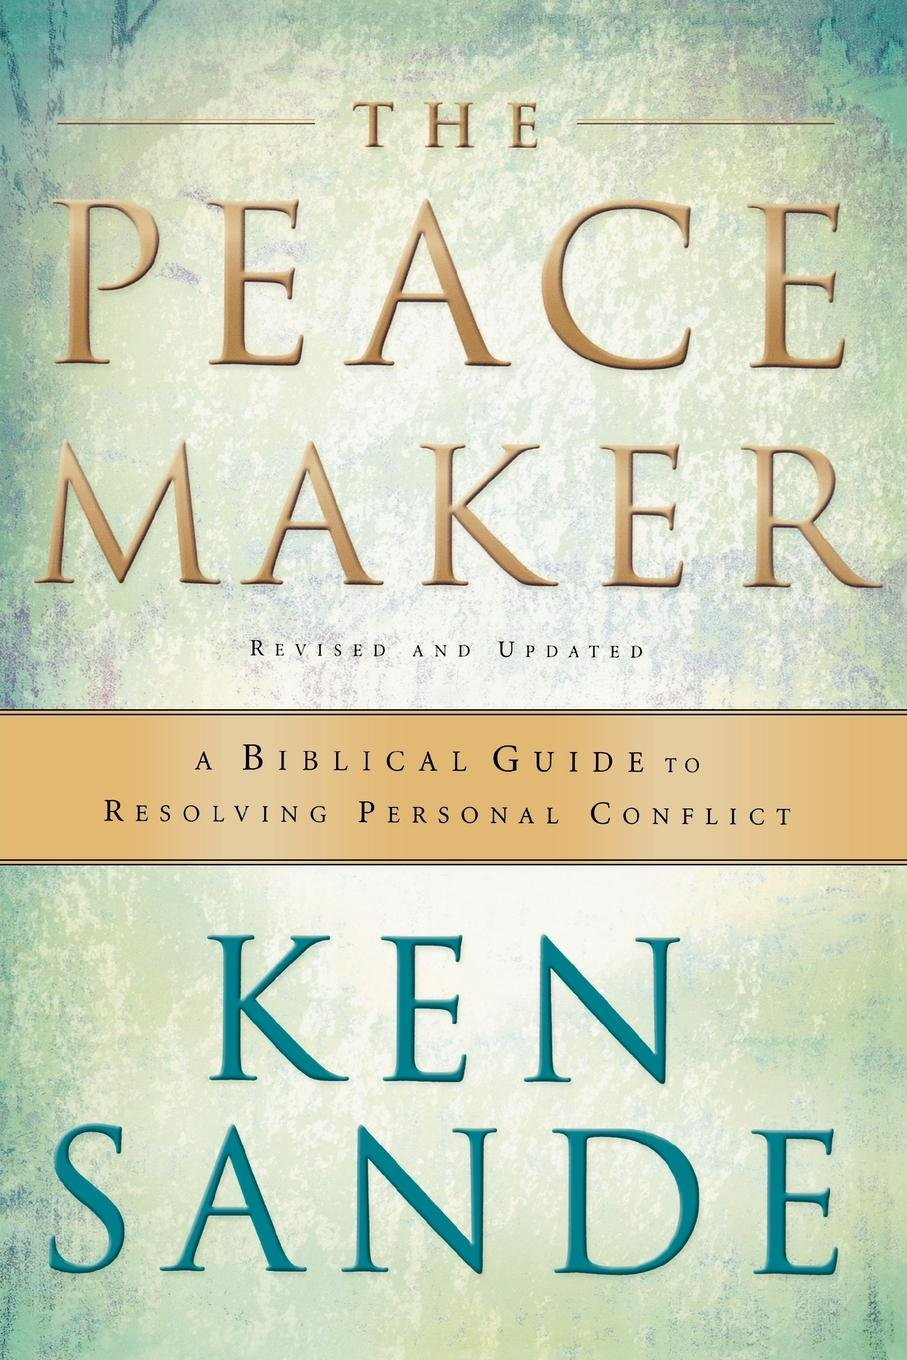 Amazon Com The Peacemaker A Biblical Guide To Resolving Personal